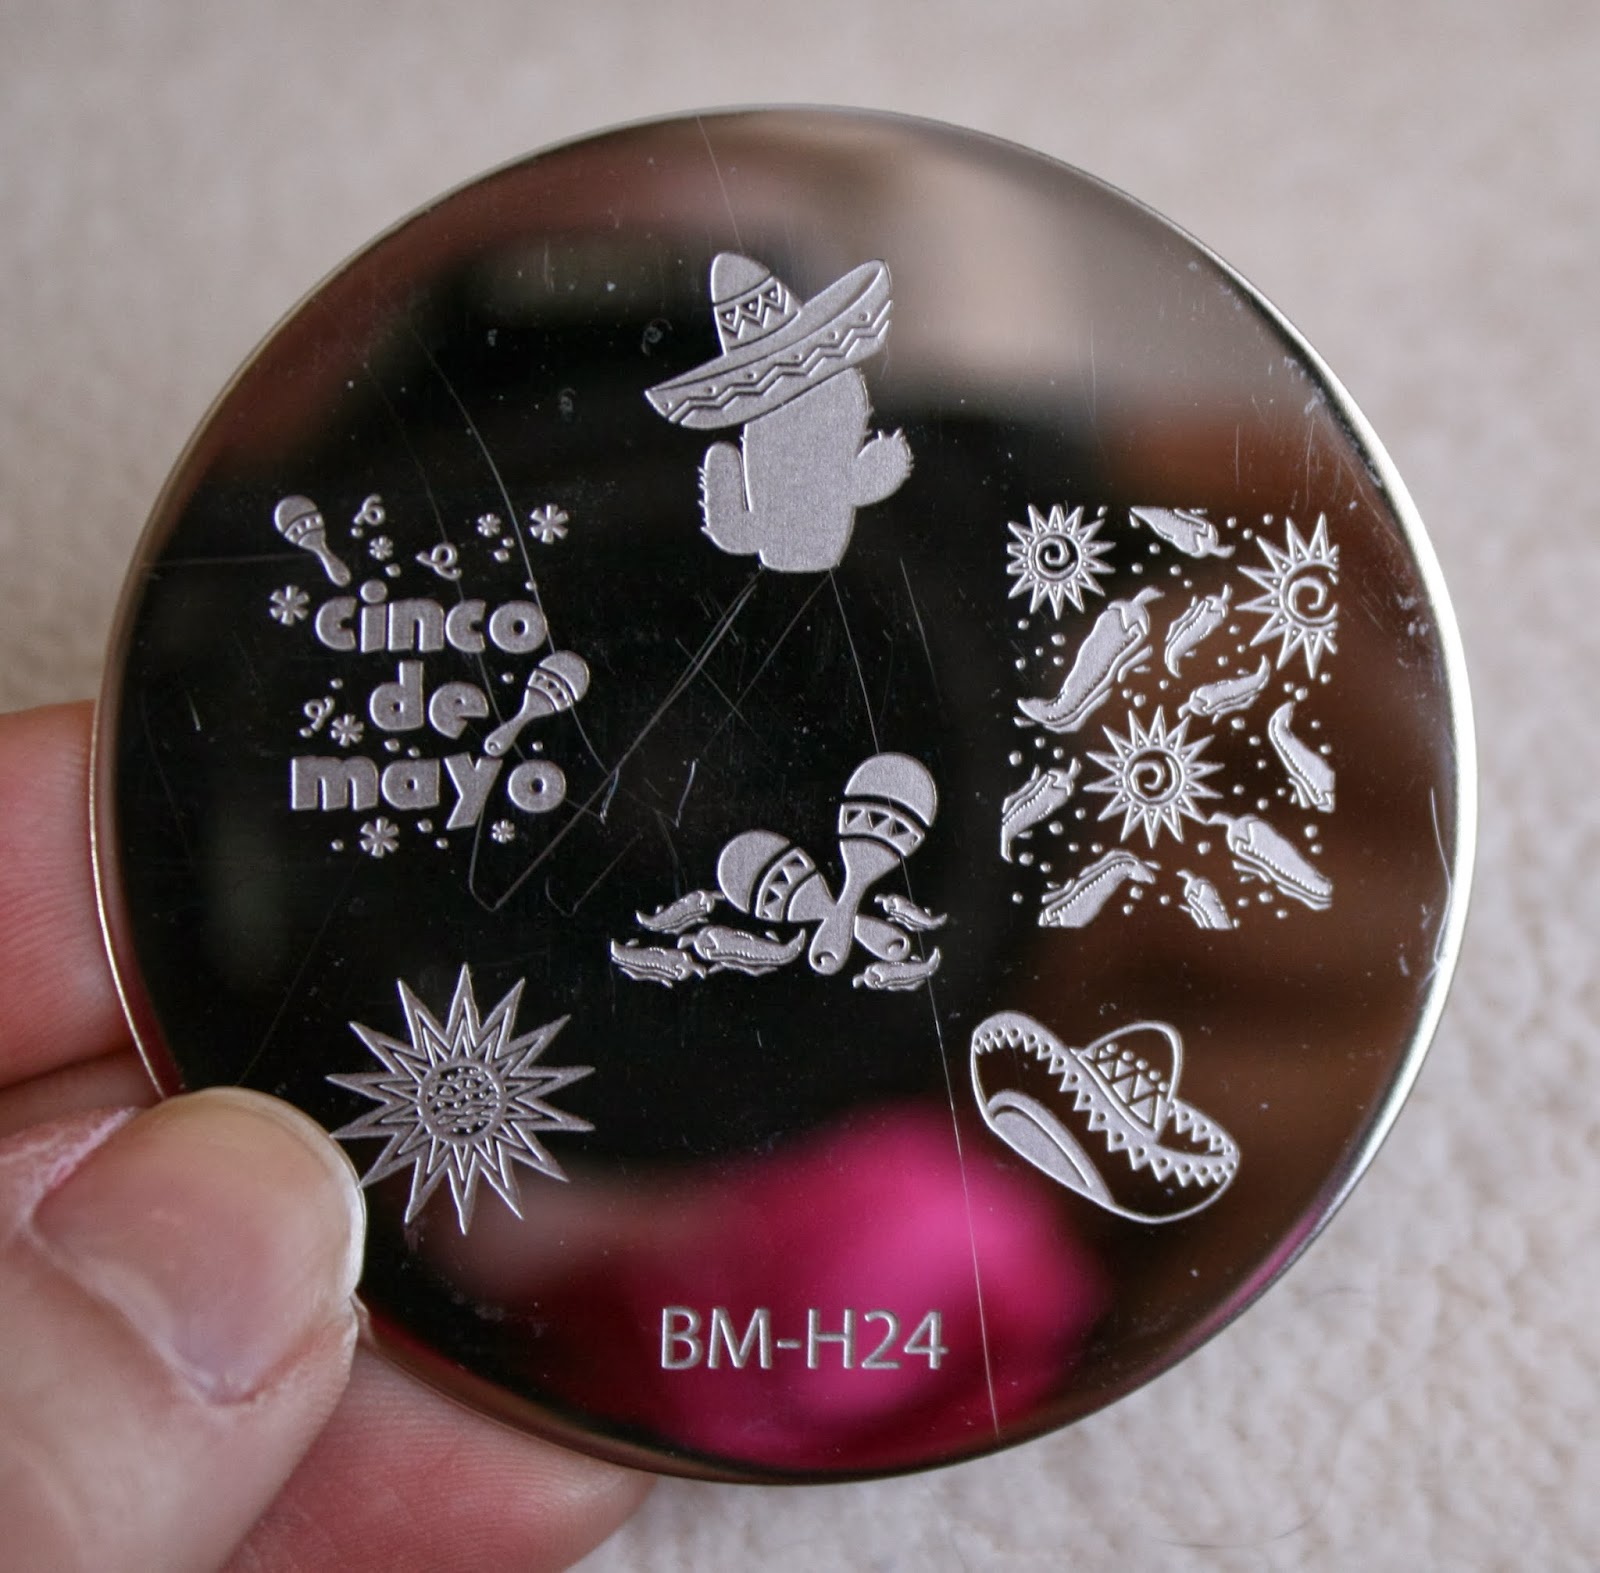 bundle monster nail stamping plates set collection holiday 2013 nails art stamp konad bm-h24